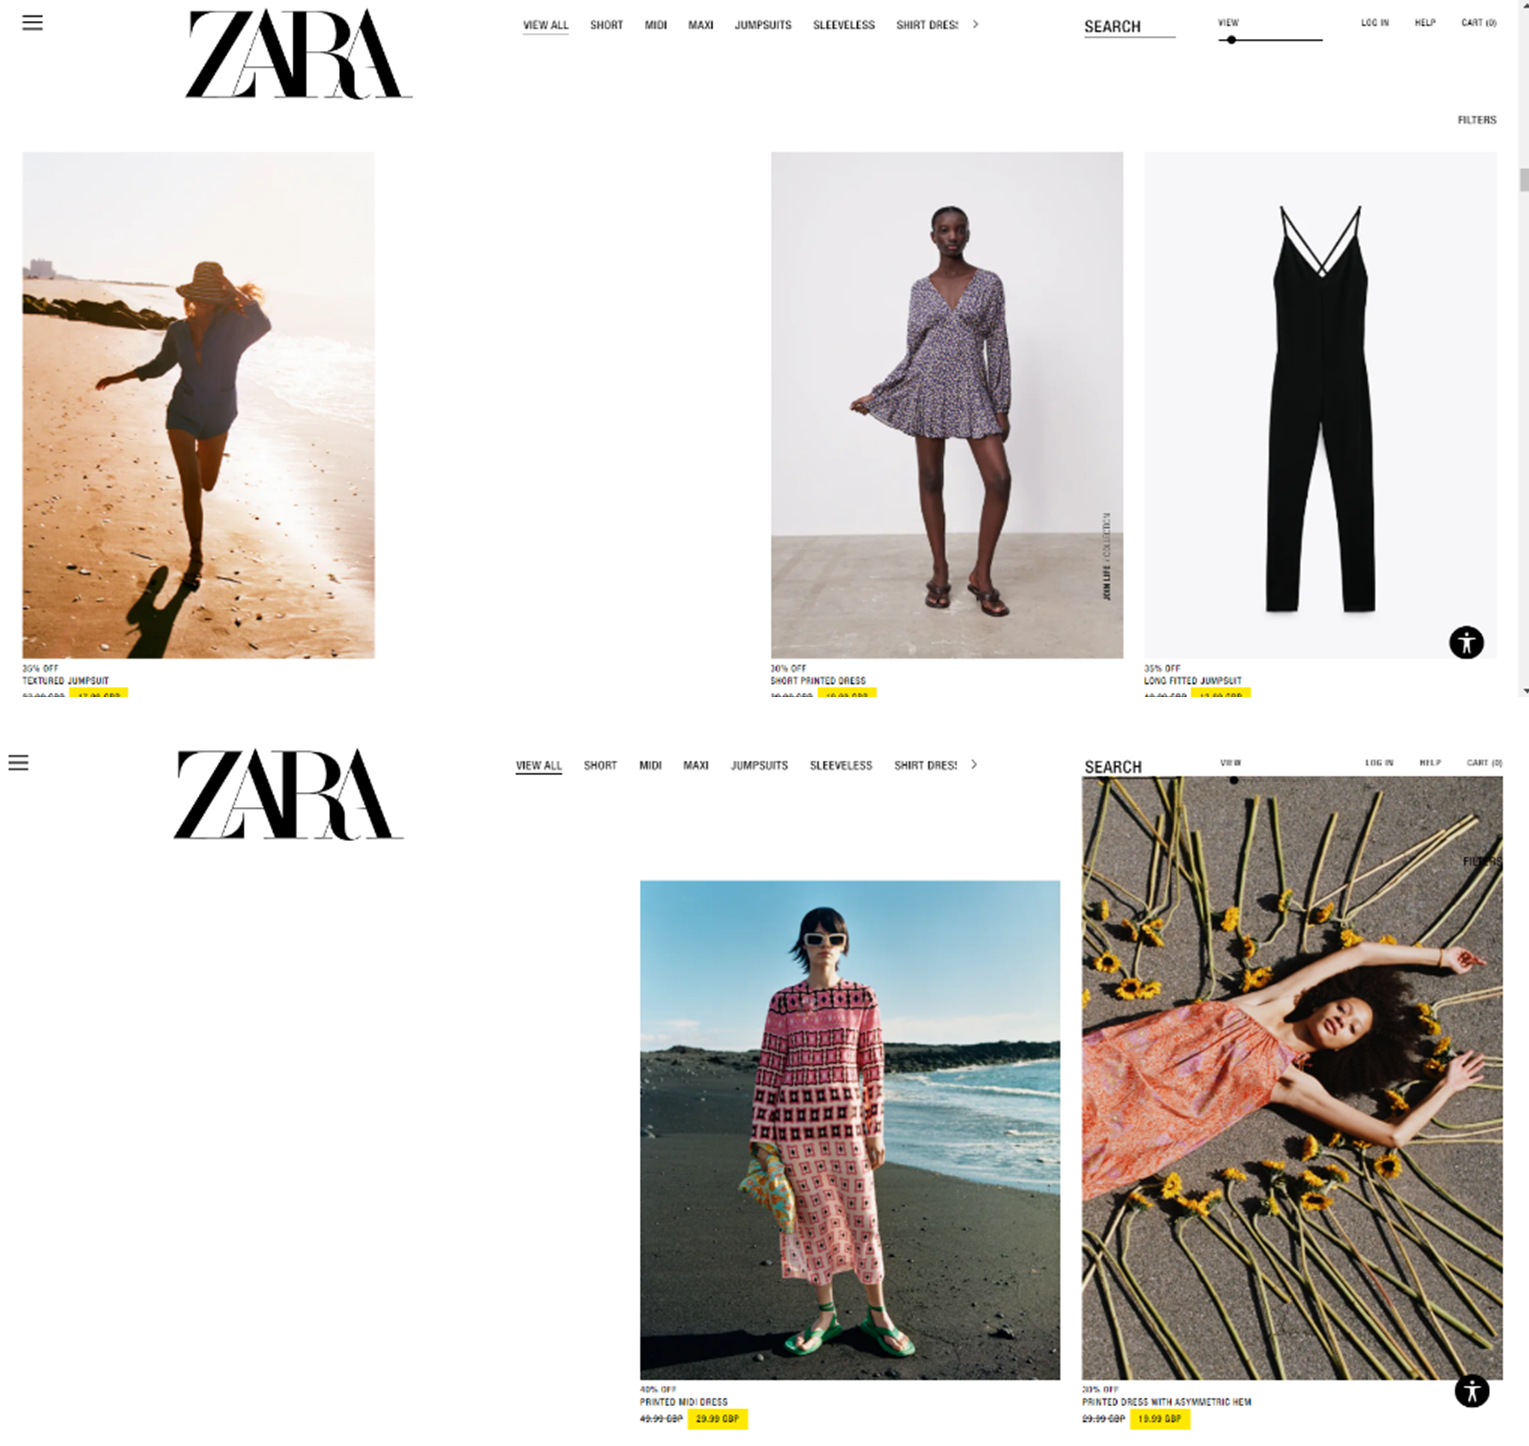 Zara dresses product page